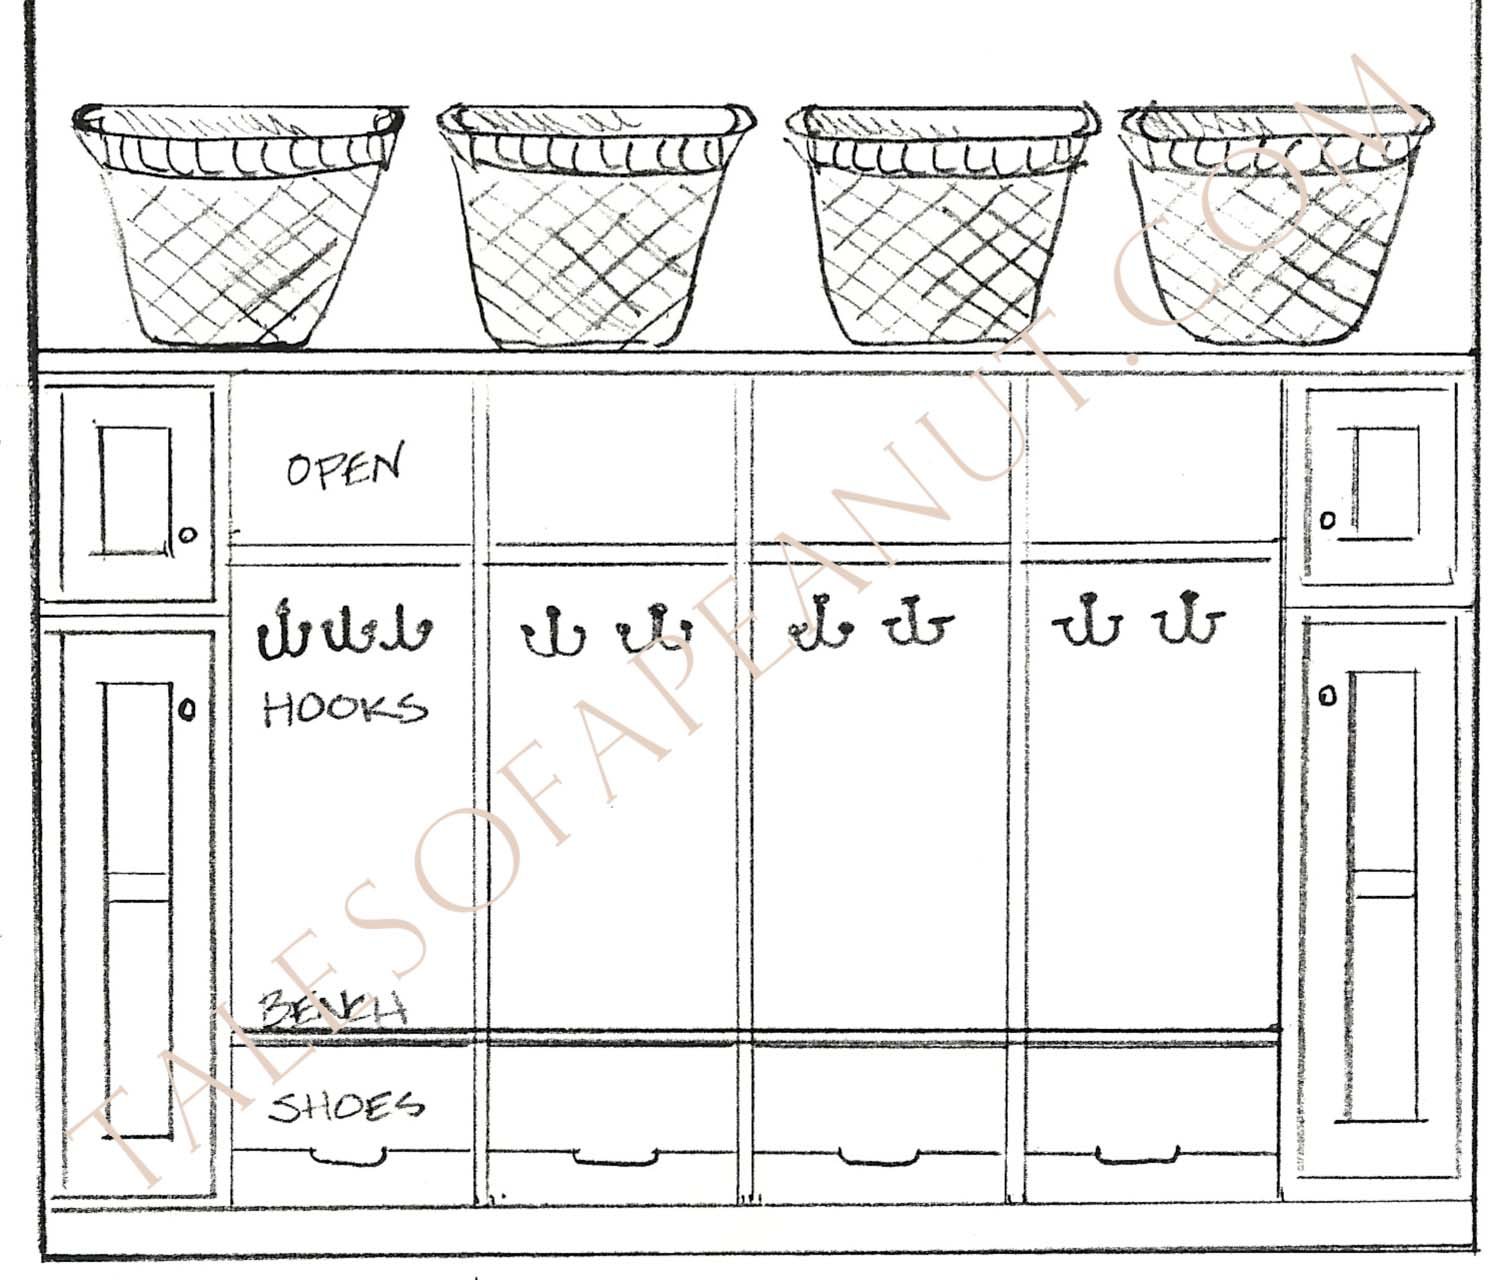 Download Mudroom Storage Building Plans msd flow bench plans ...